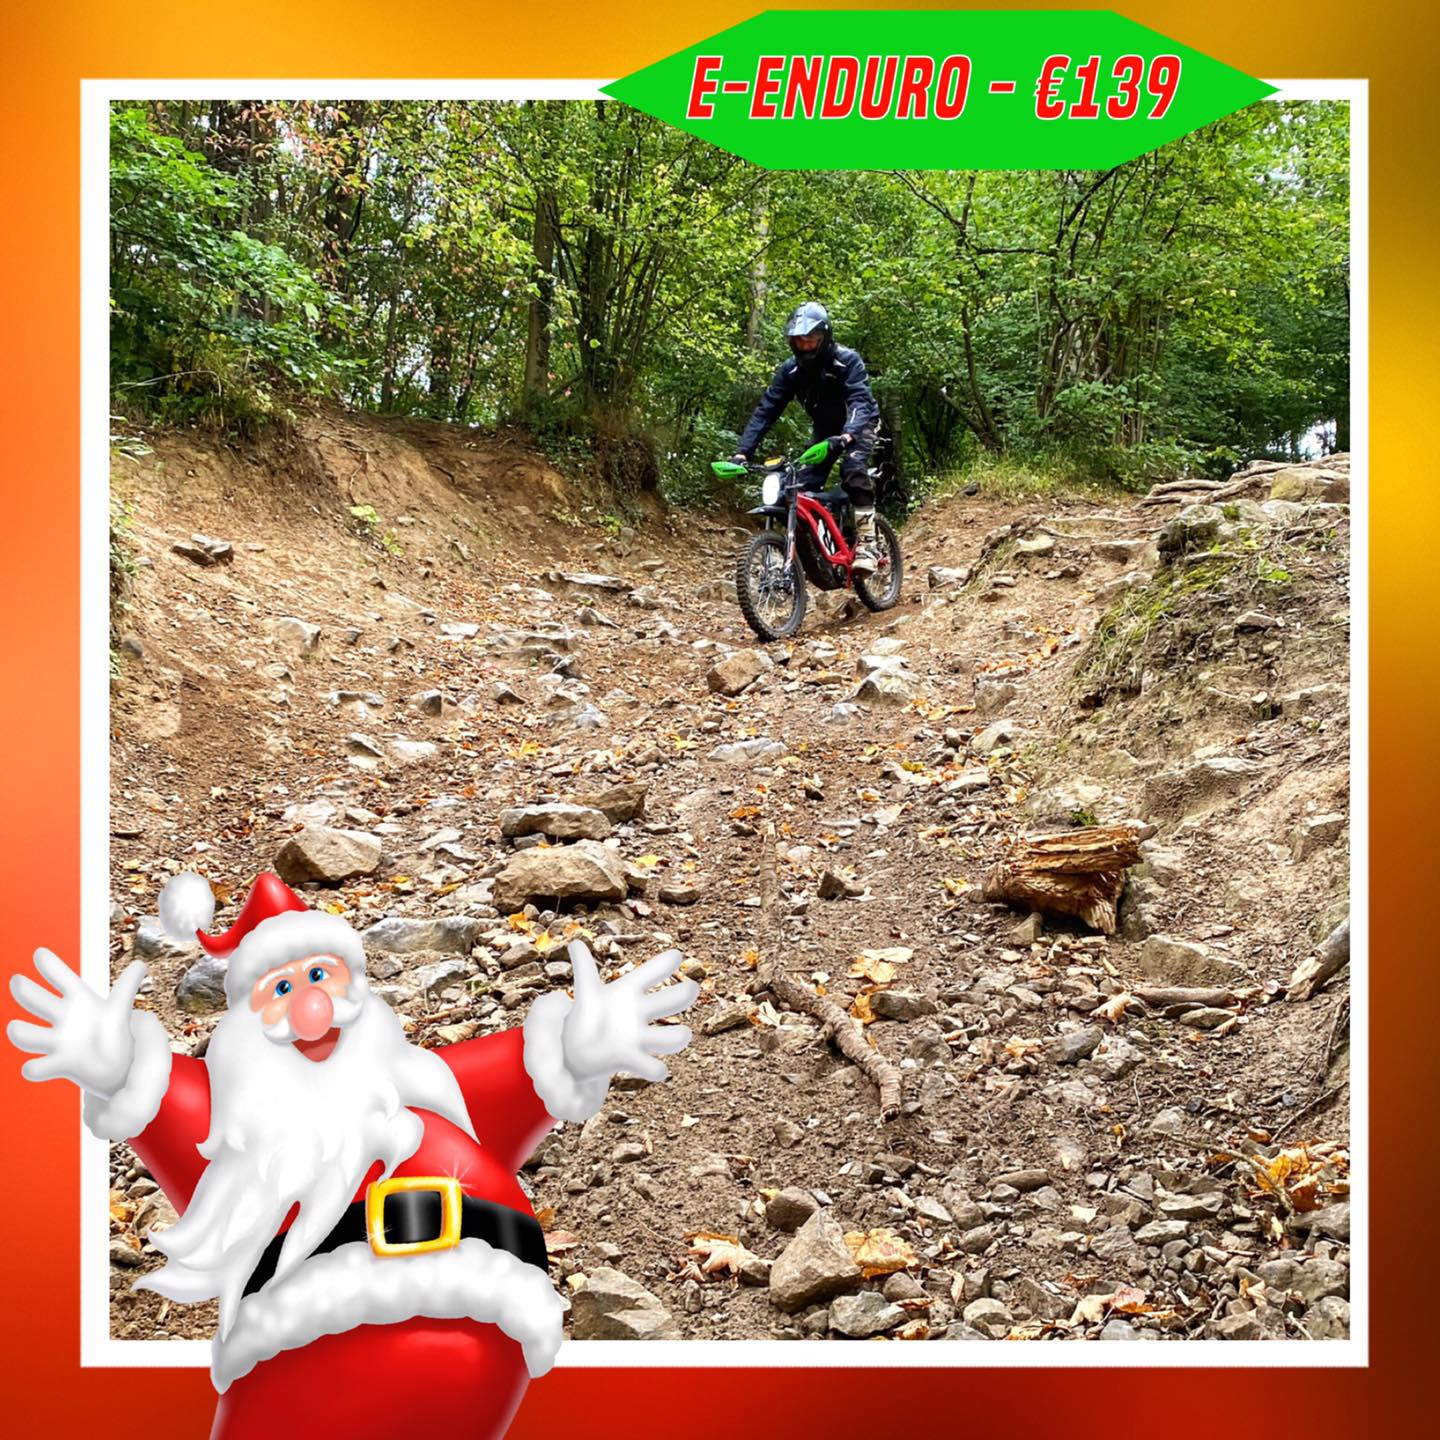 Kerst-initiaties Bilstain Endurofun 44 Surron